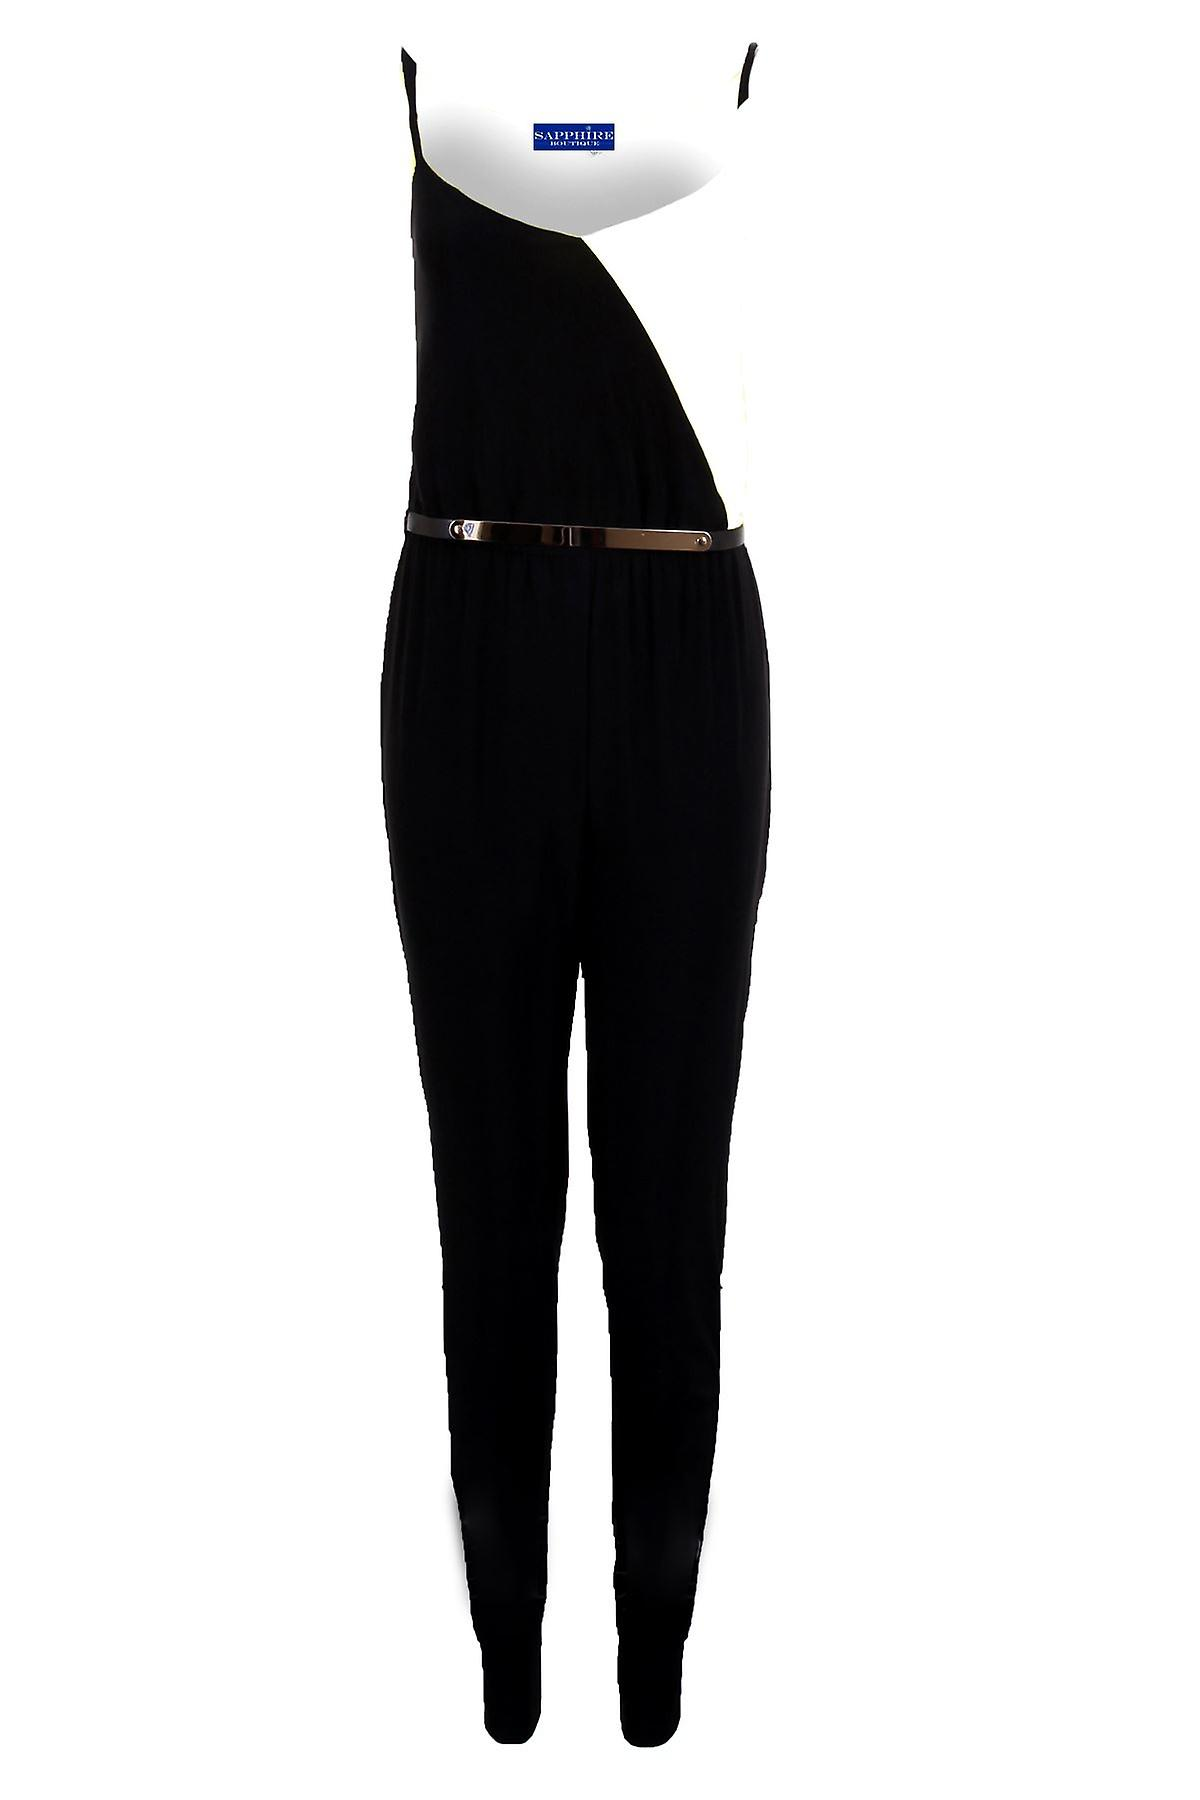 Ladies Sleeveless Strappy Black Contrast Belted All In One Women's Party Jumpsuit